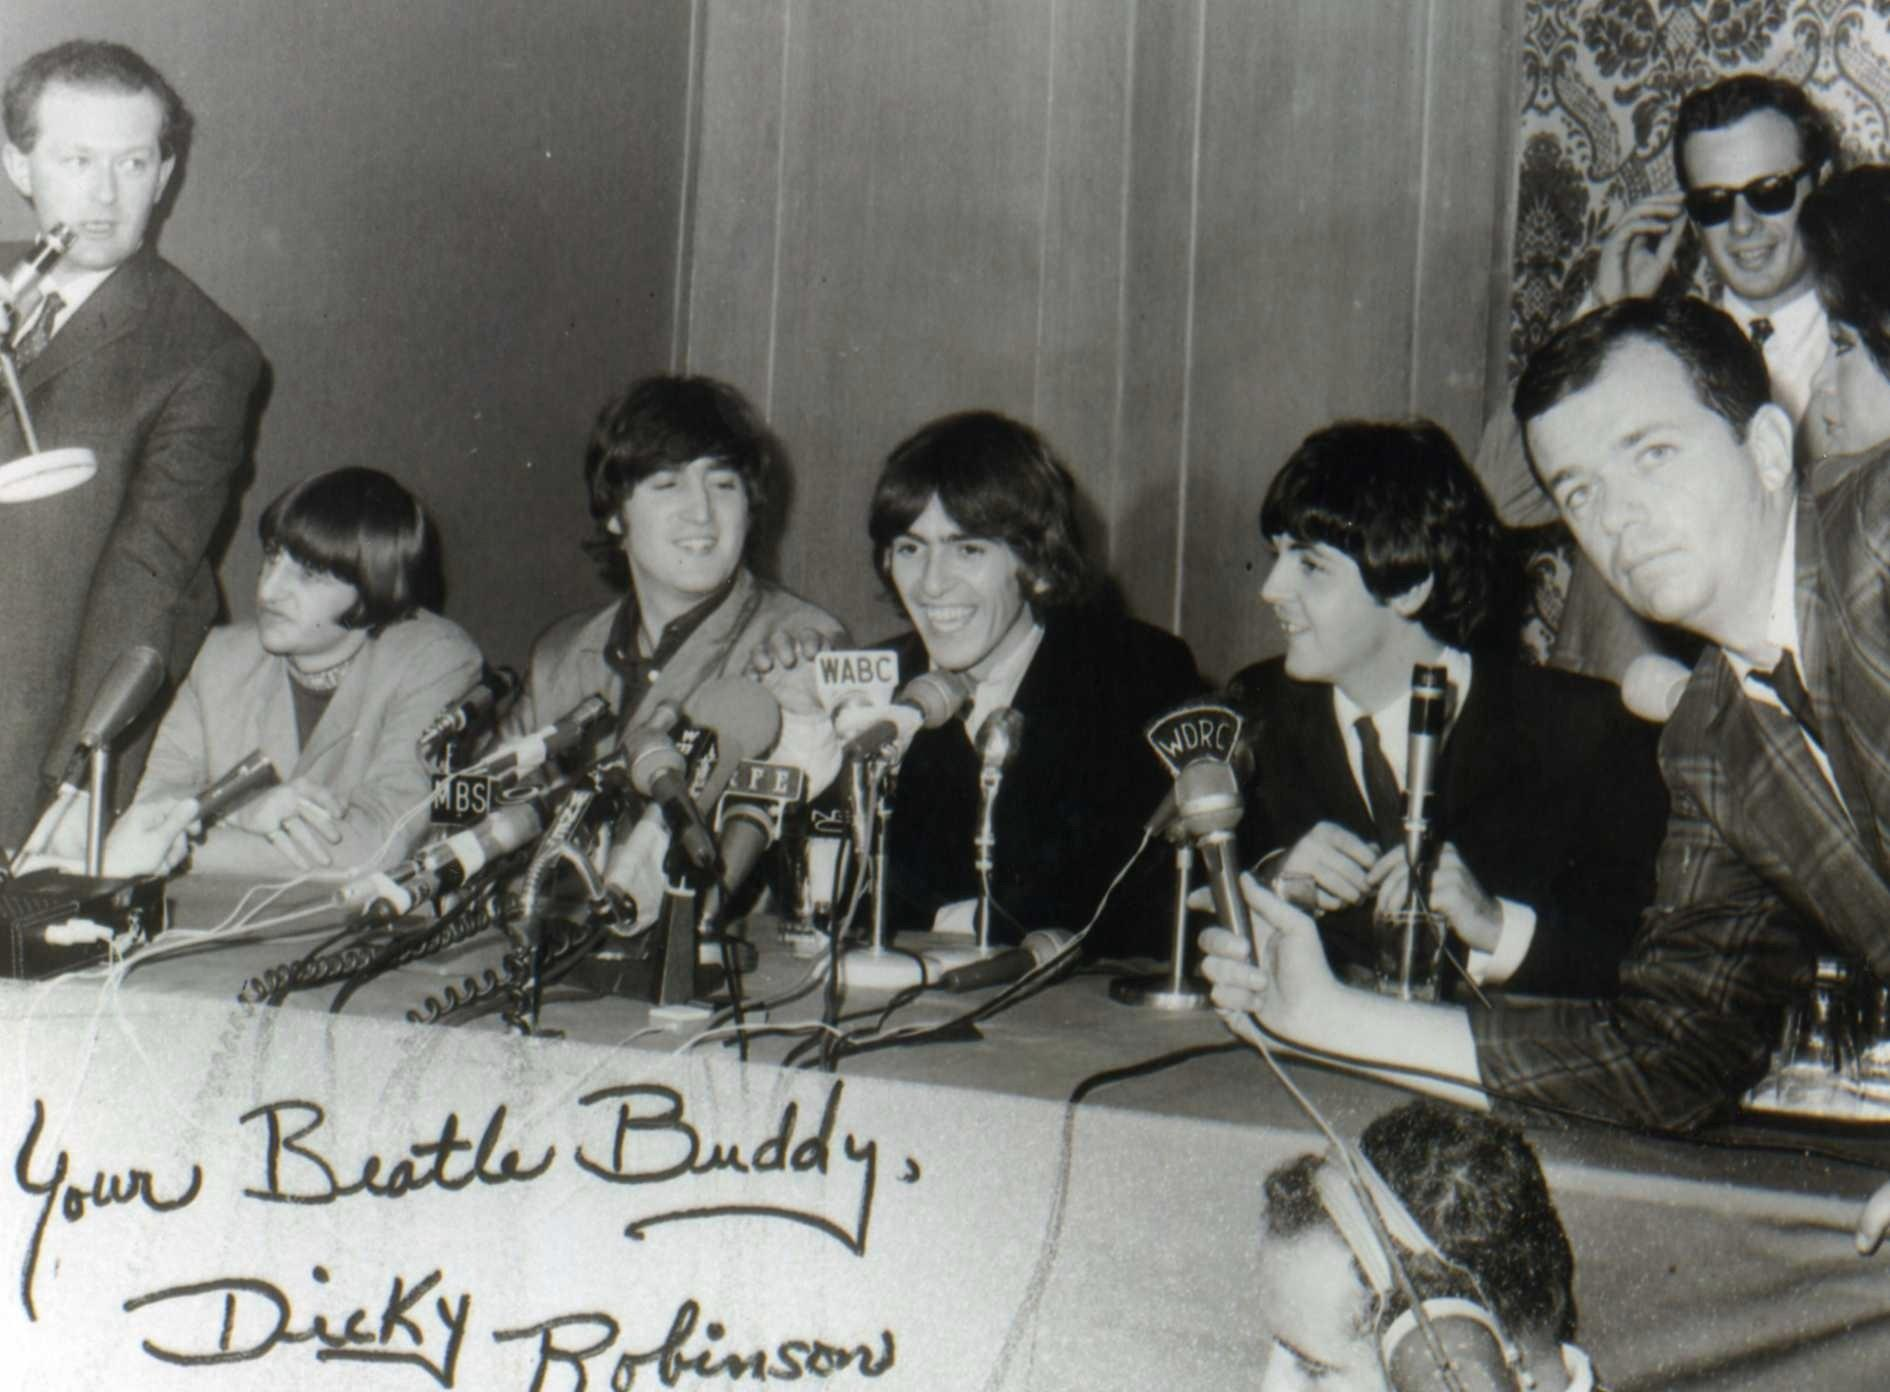 Former WDRC personality Dick Robinson (on the right holding microphone), was one of a handful of select broadcasters invited to attend the Beatles' press conference at the St. George Hotel in New York in 1964. After the press conference, he also met privately with the Fab Four. Also shown in the picture taken that day are Ed Sullivan and his recording crew, Movie Tone News reps, and Brian Epstein, the Beatles' manager, shown in the photo's background.